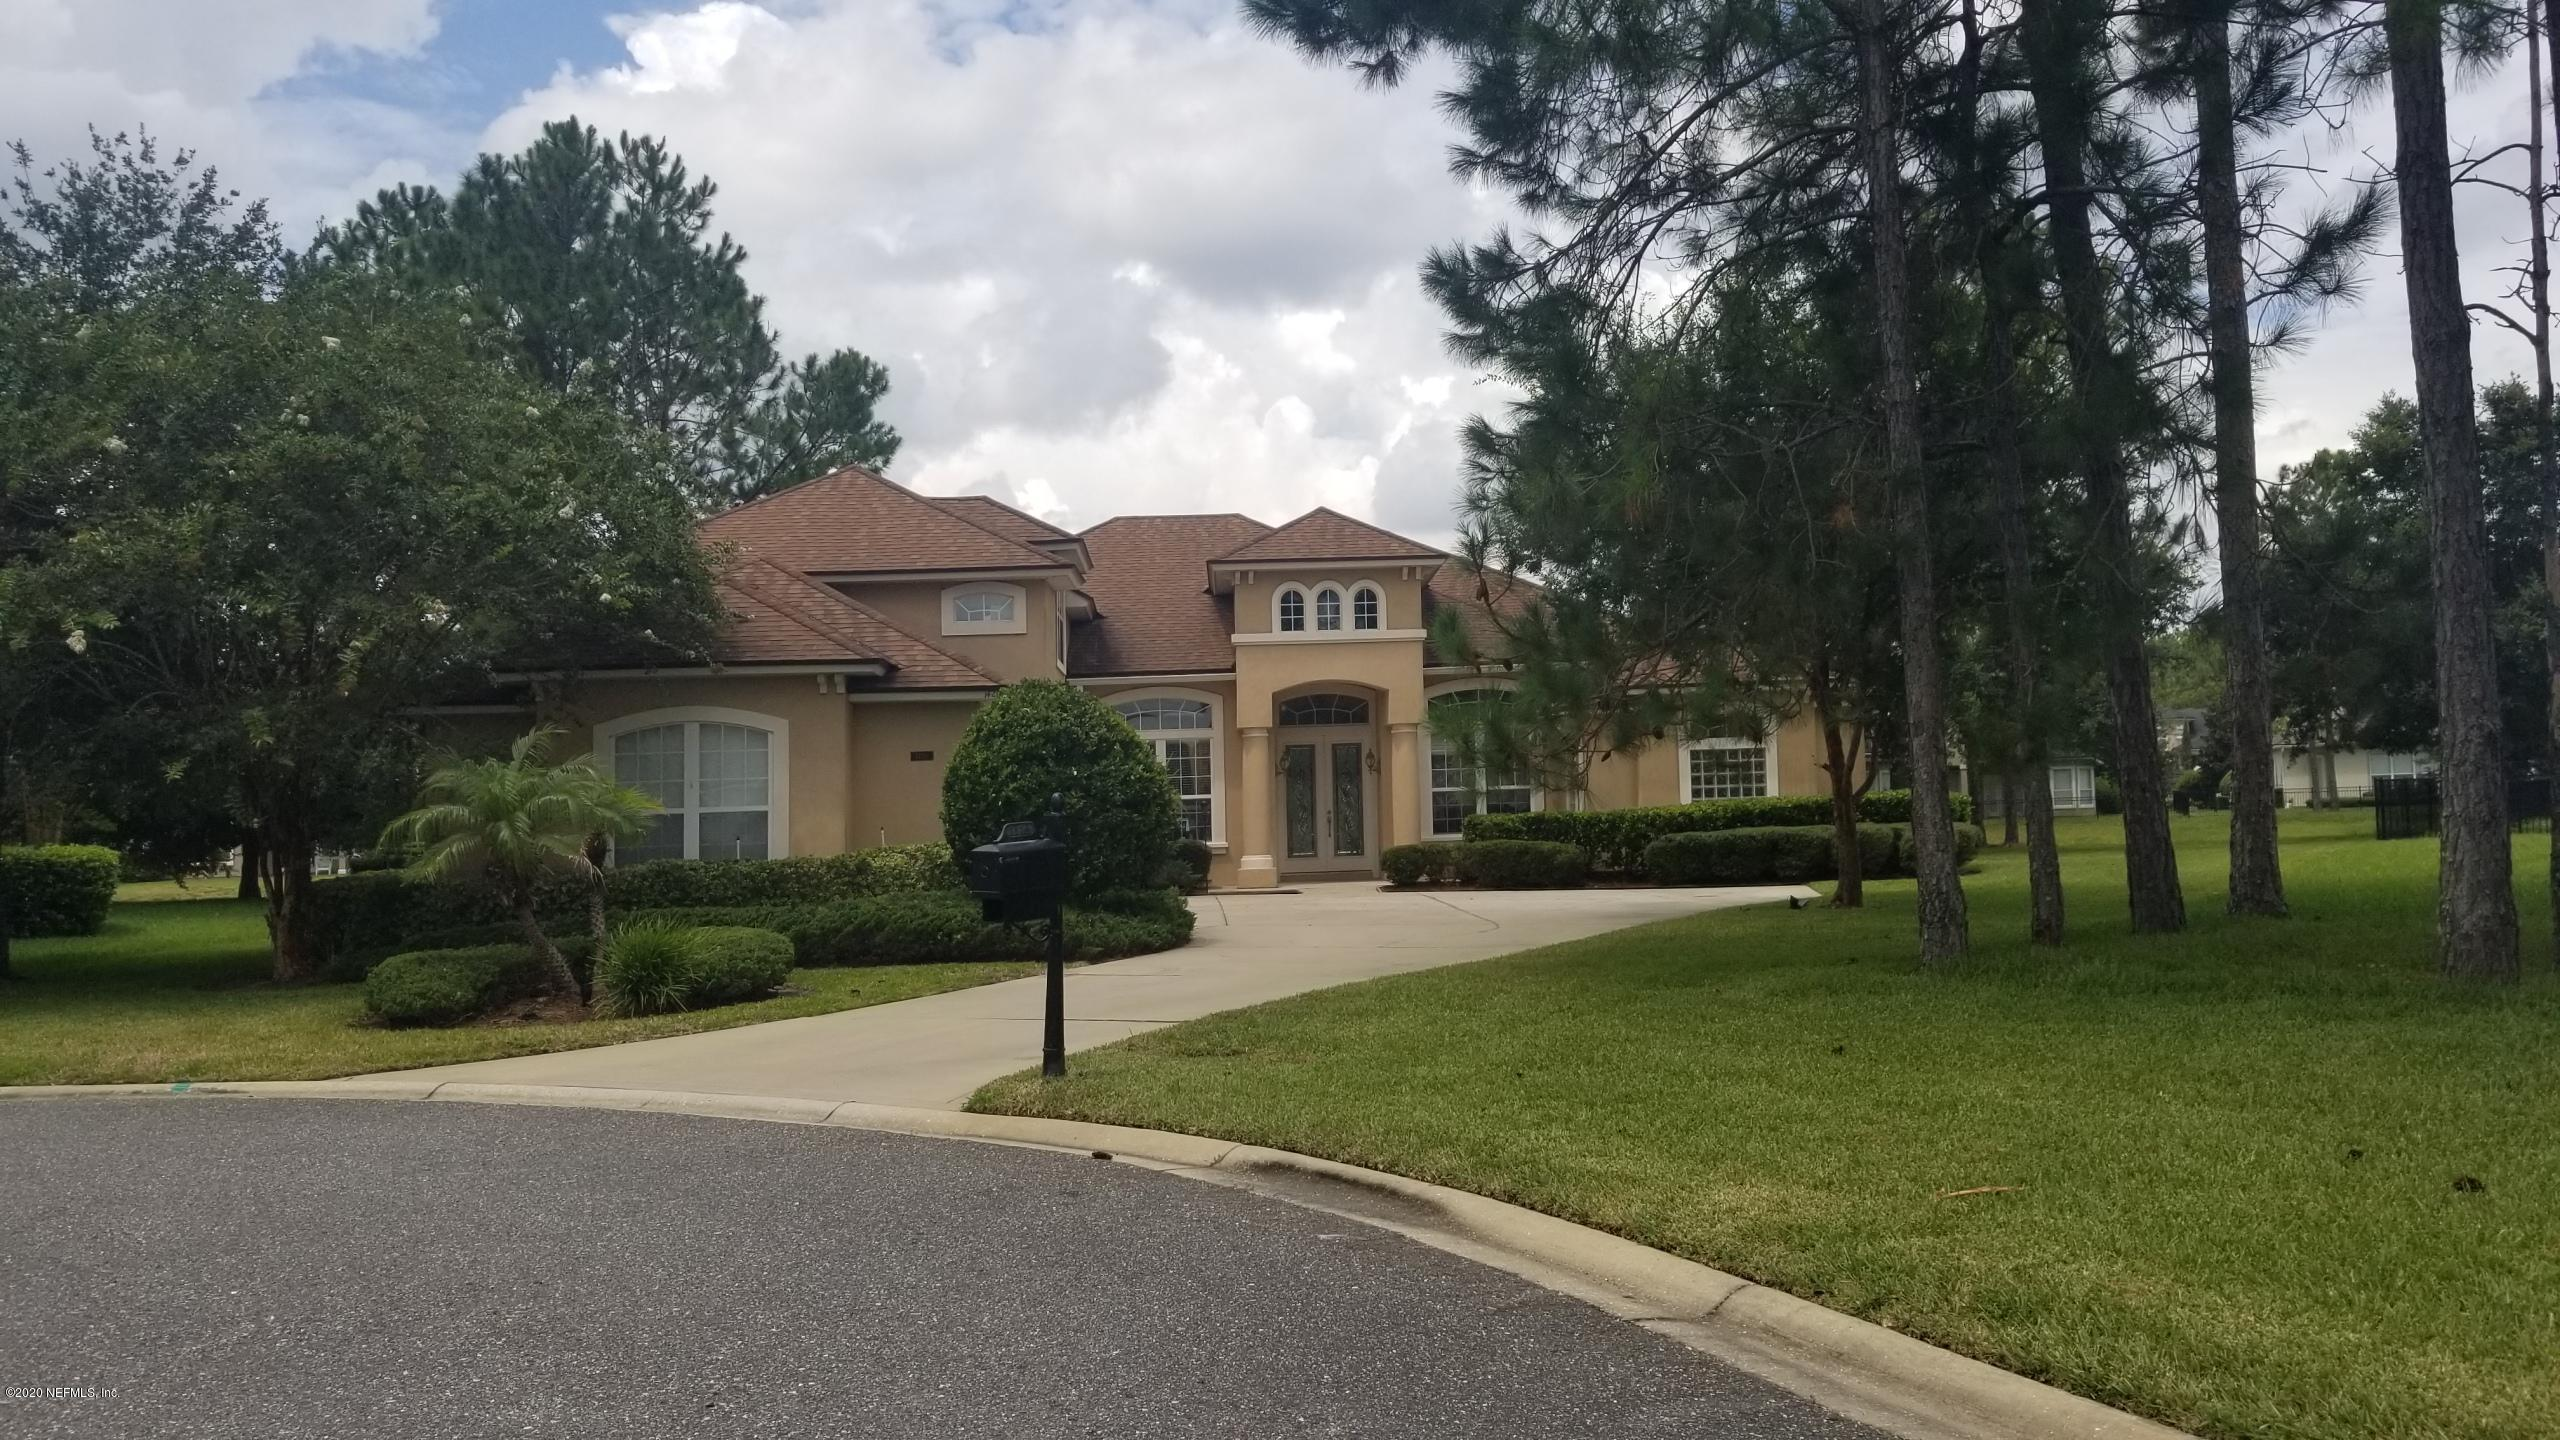 1426 BLACK PINE, ORANGE PARK, FLORIDA 32065, 5 Bedrooms Bedrooms, ,3 BathroomsBathrooms,Residential,For sale,BLACK PINE,1060727